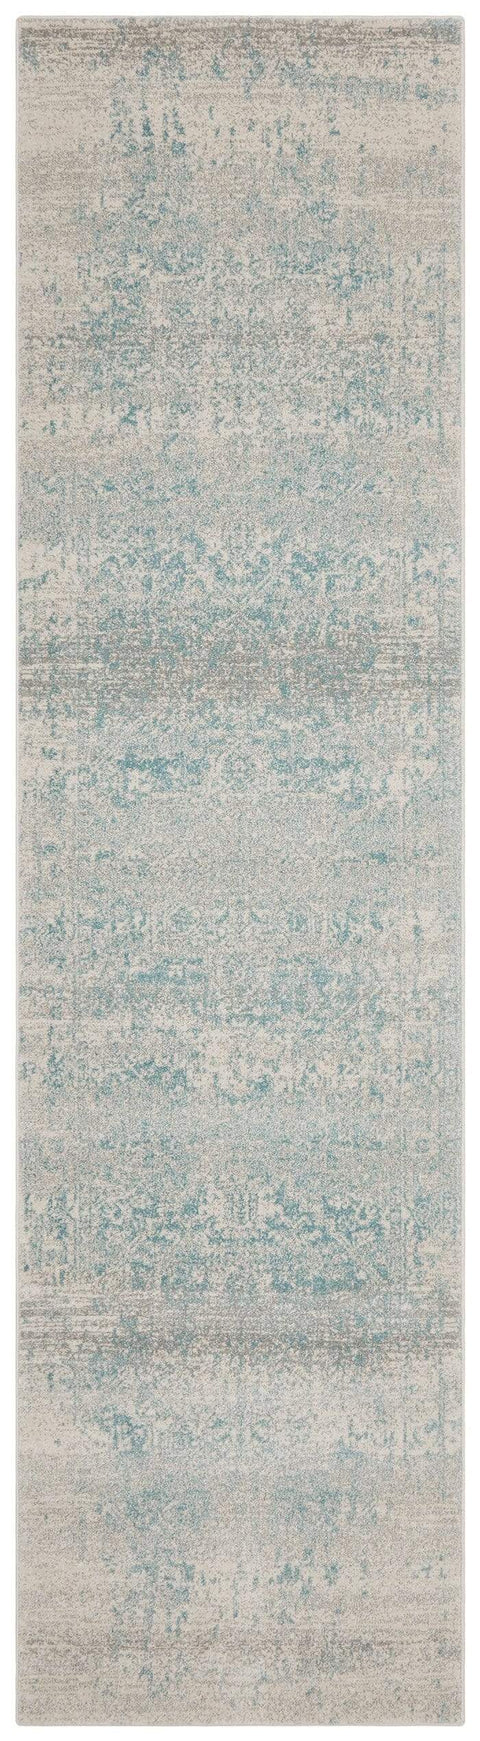 dalvic-ivory-light-blue-distressed-transitional-runner-rug-missamara.jpg